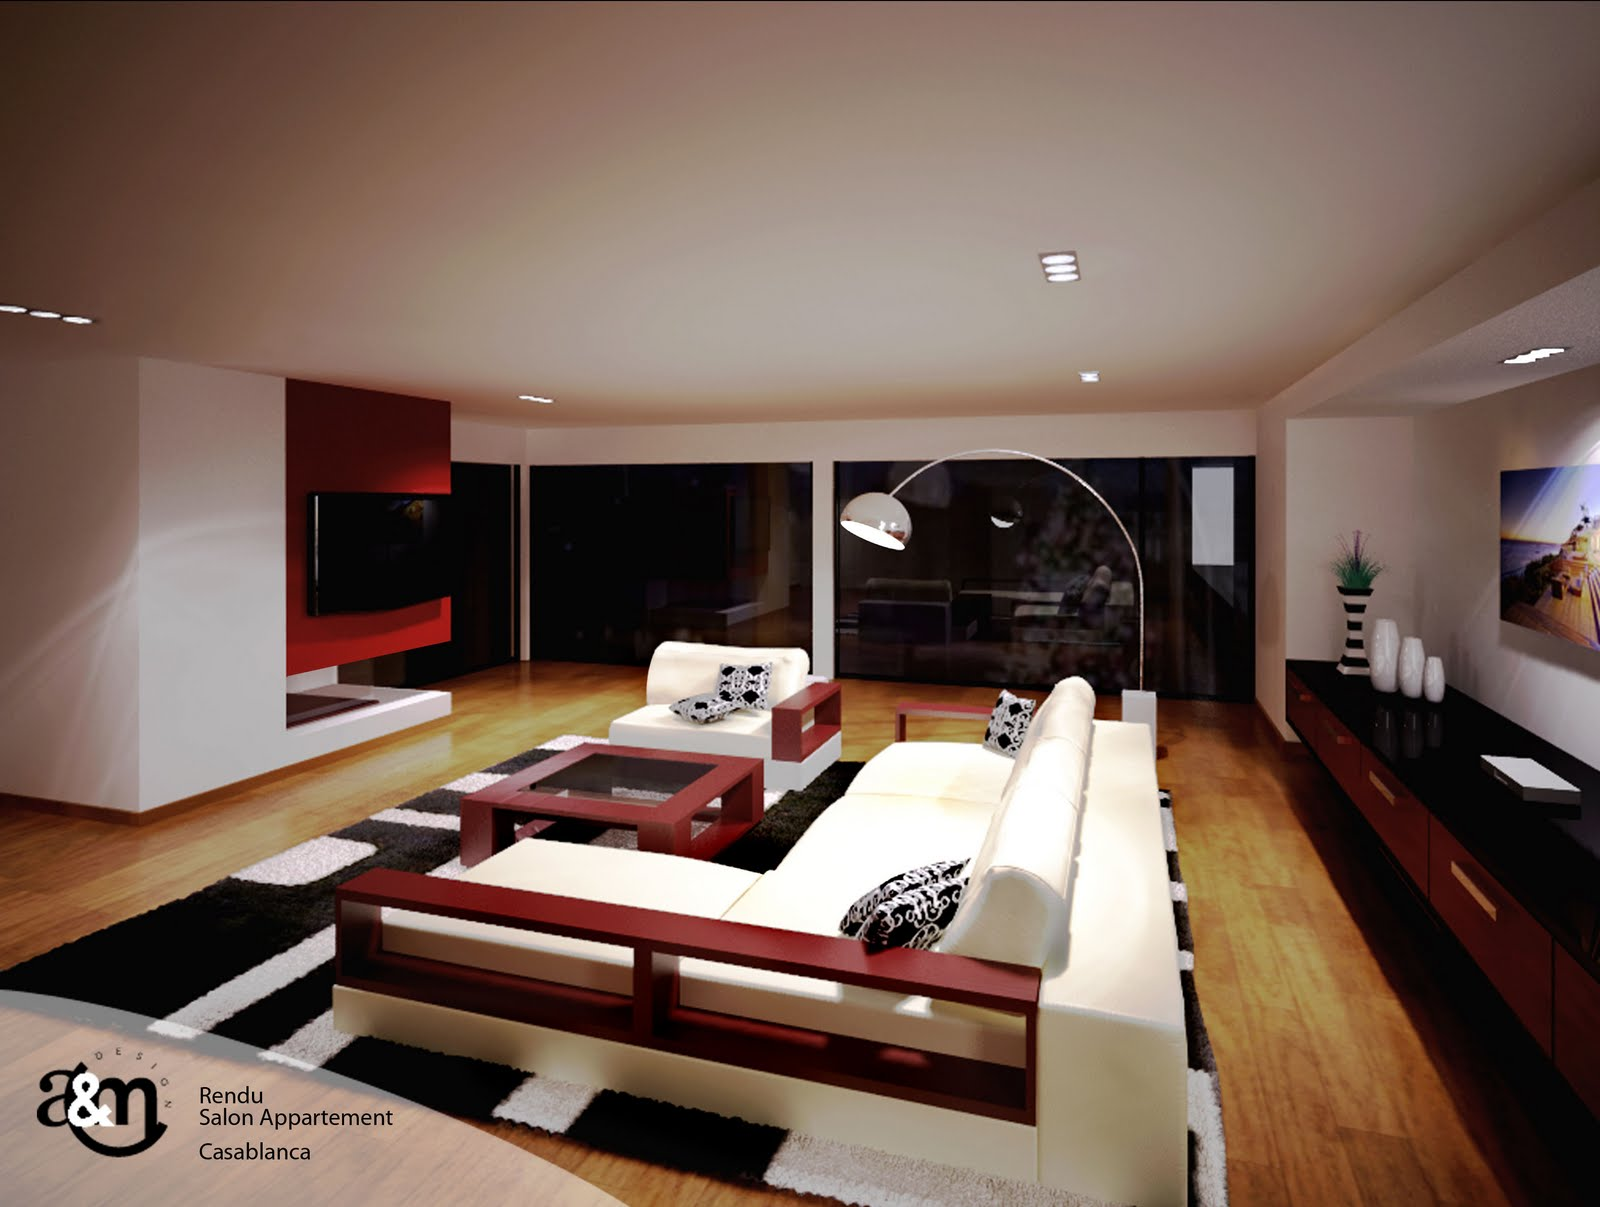 A m design architecture d 39 interieur design agencement for Interieur stylen